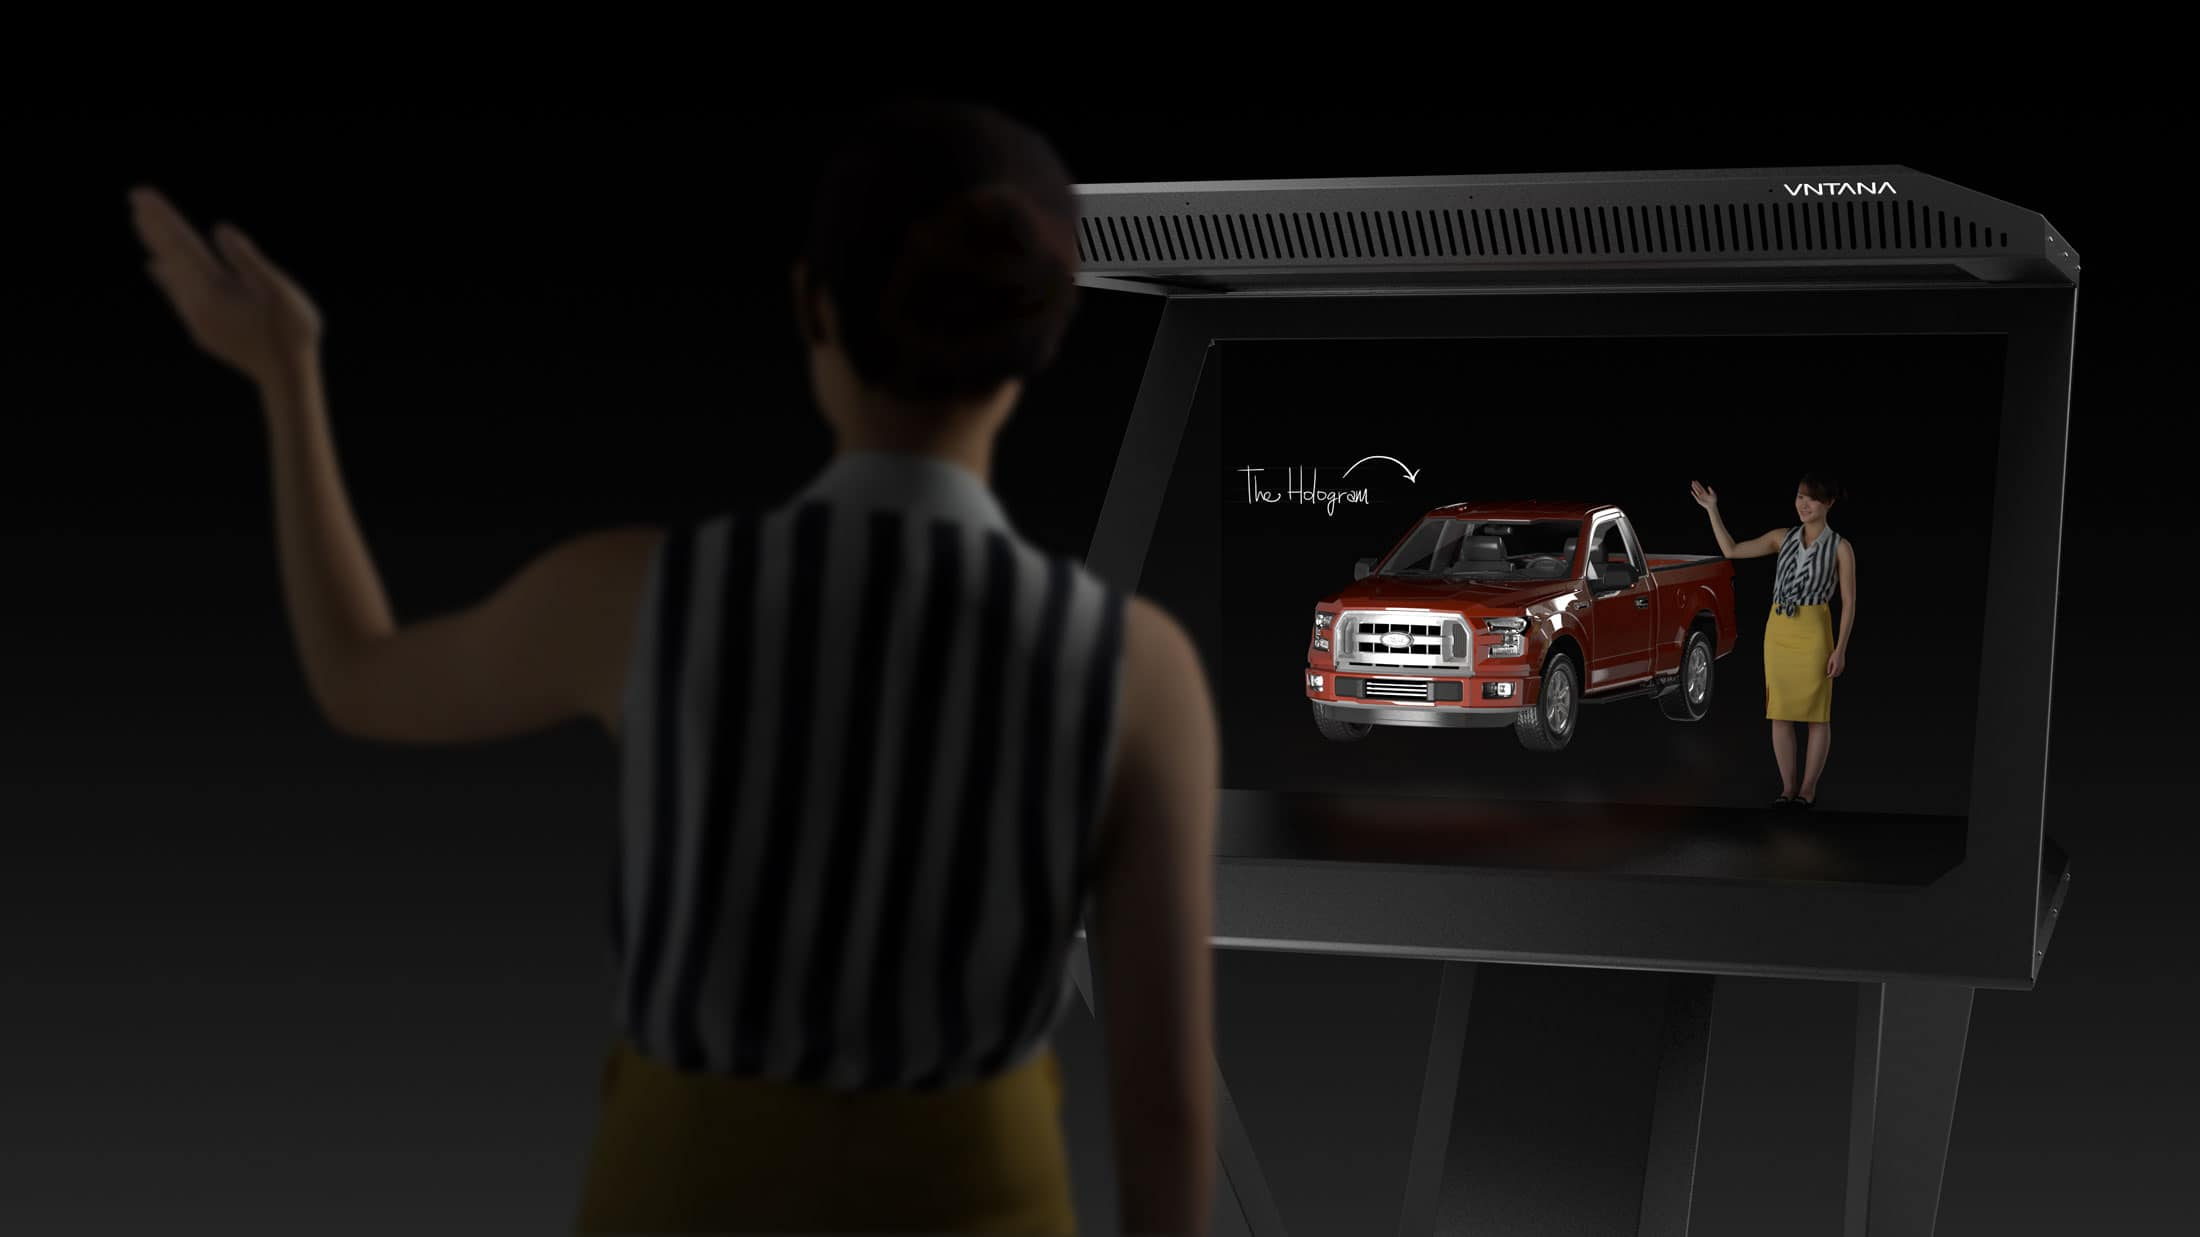 VNTANA Launches Interactive Hologram Product Display